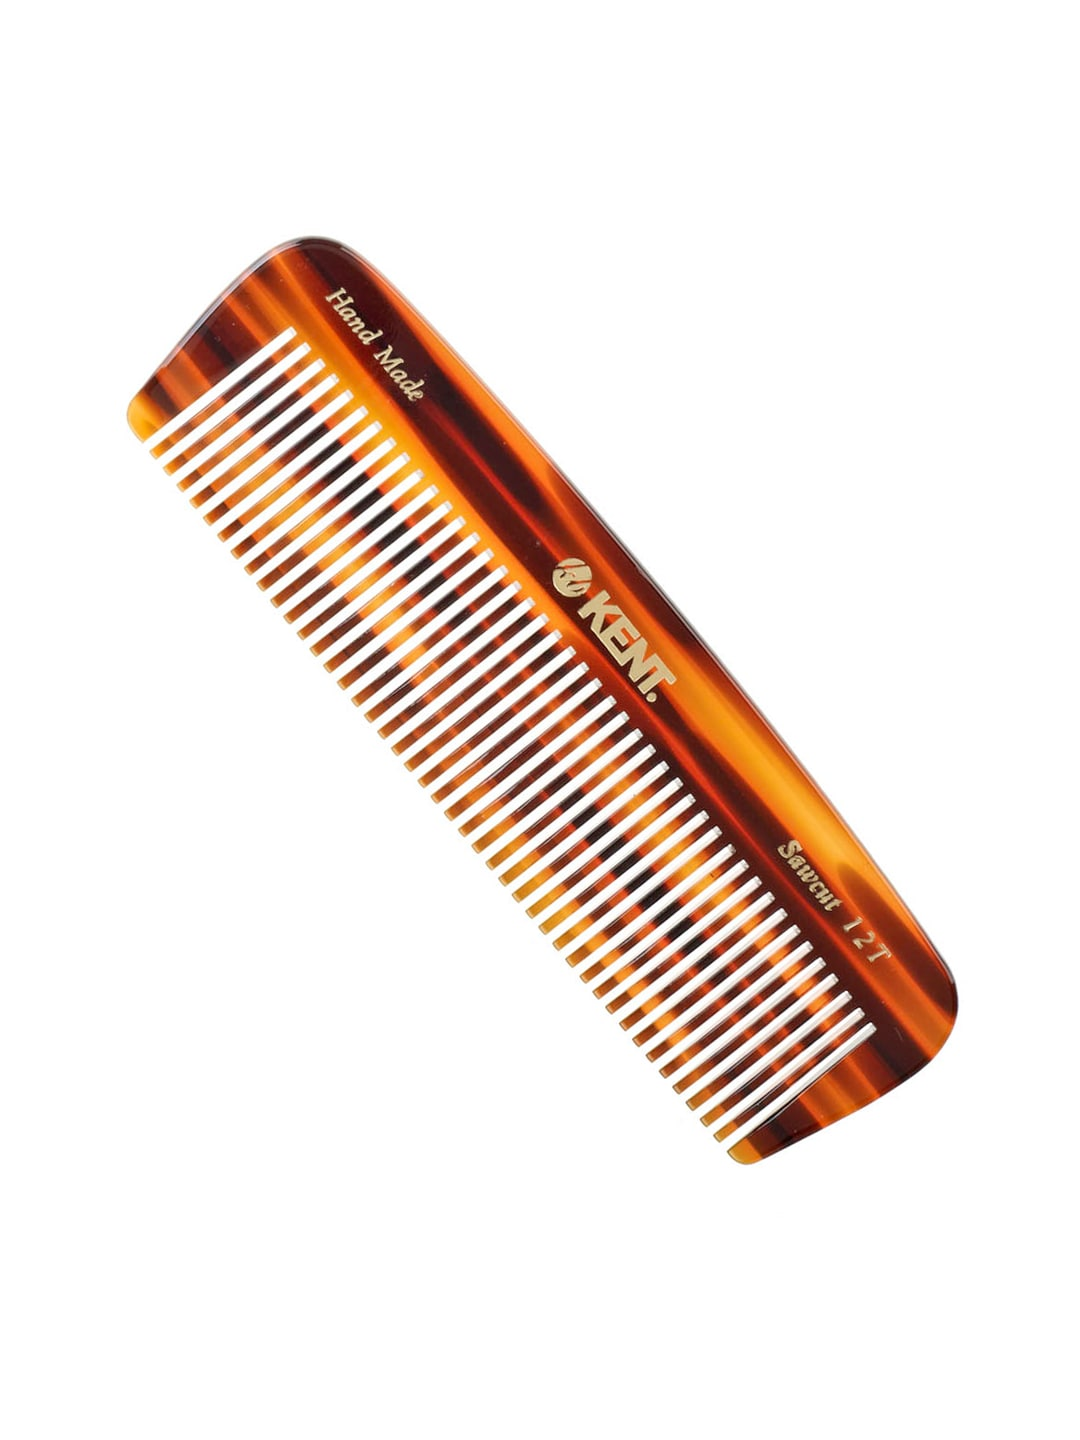 Kent Unisex Brown Handcrafted Comb 12T image